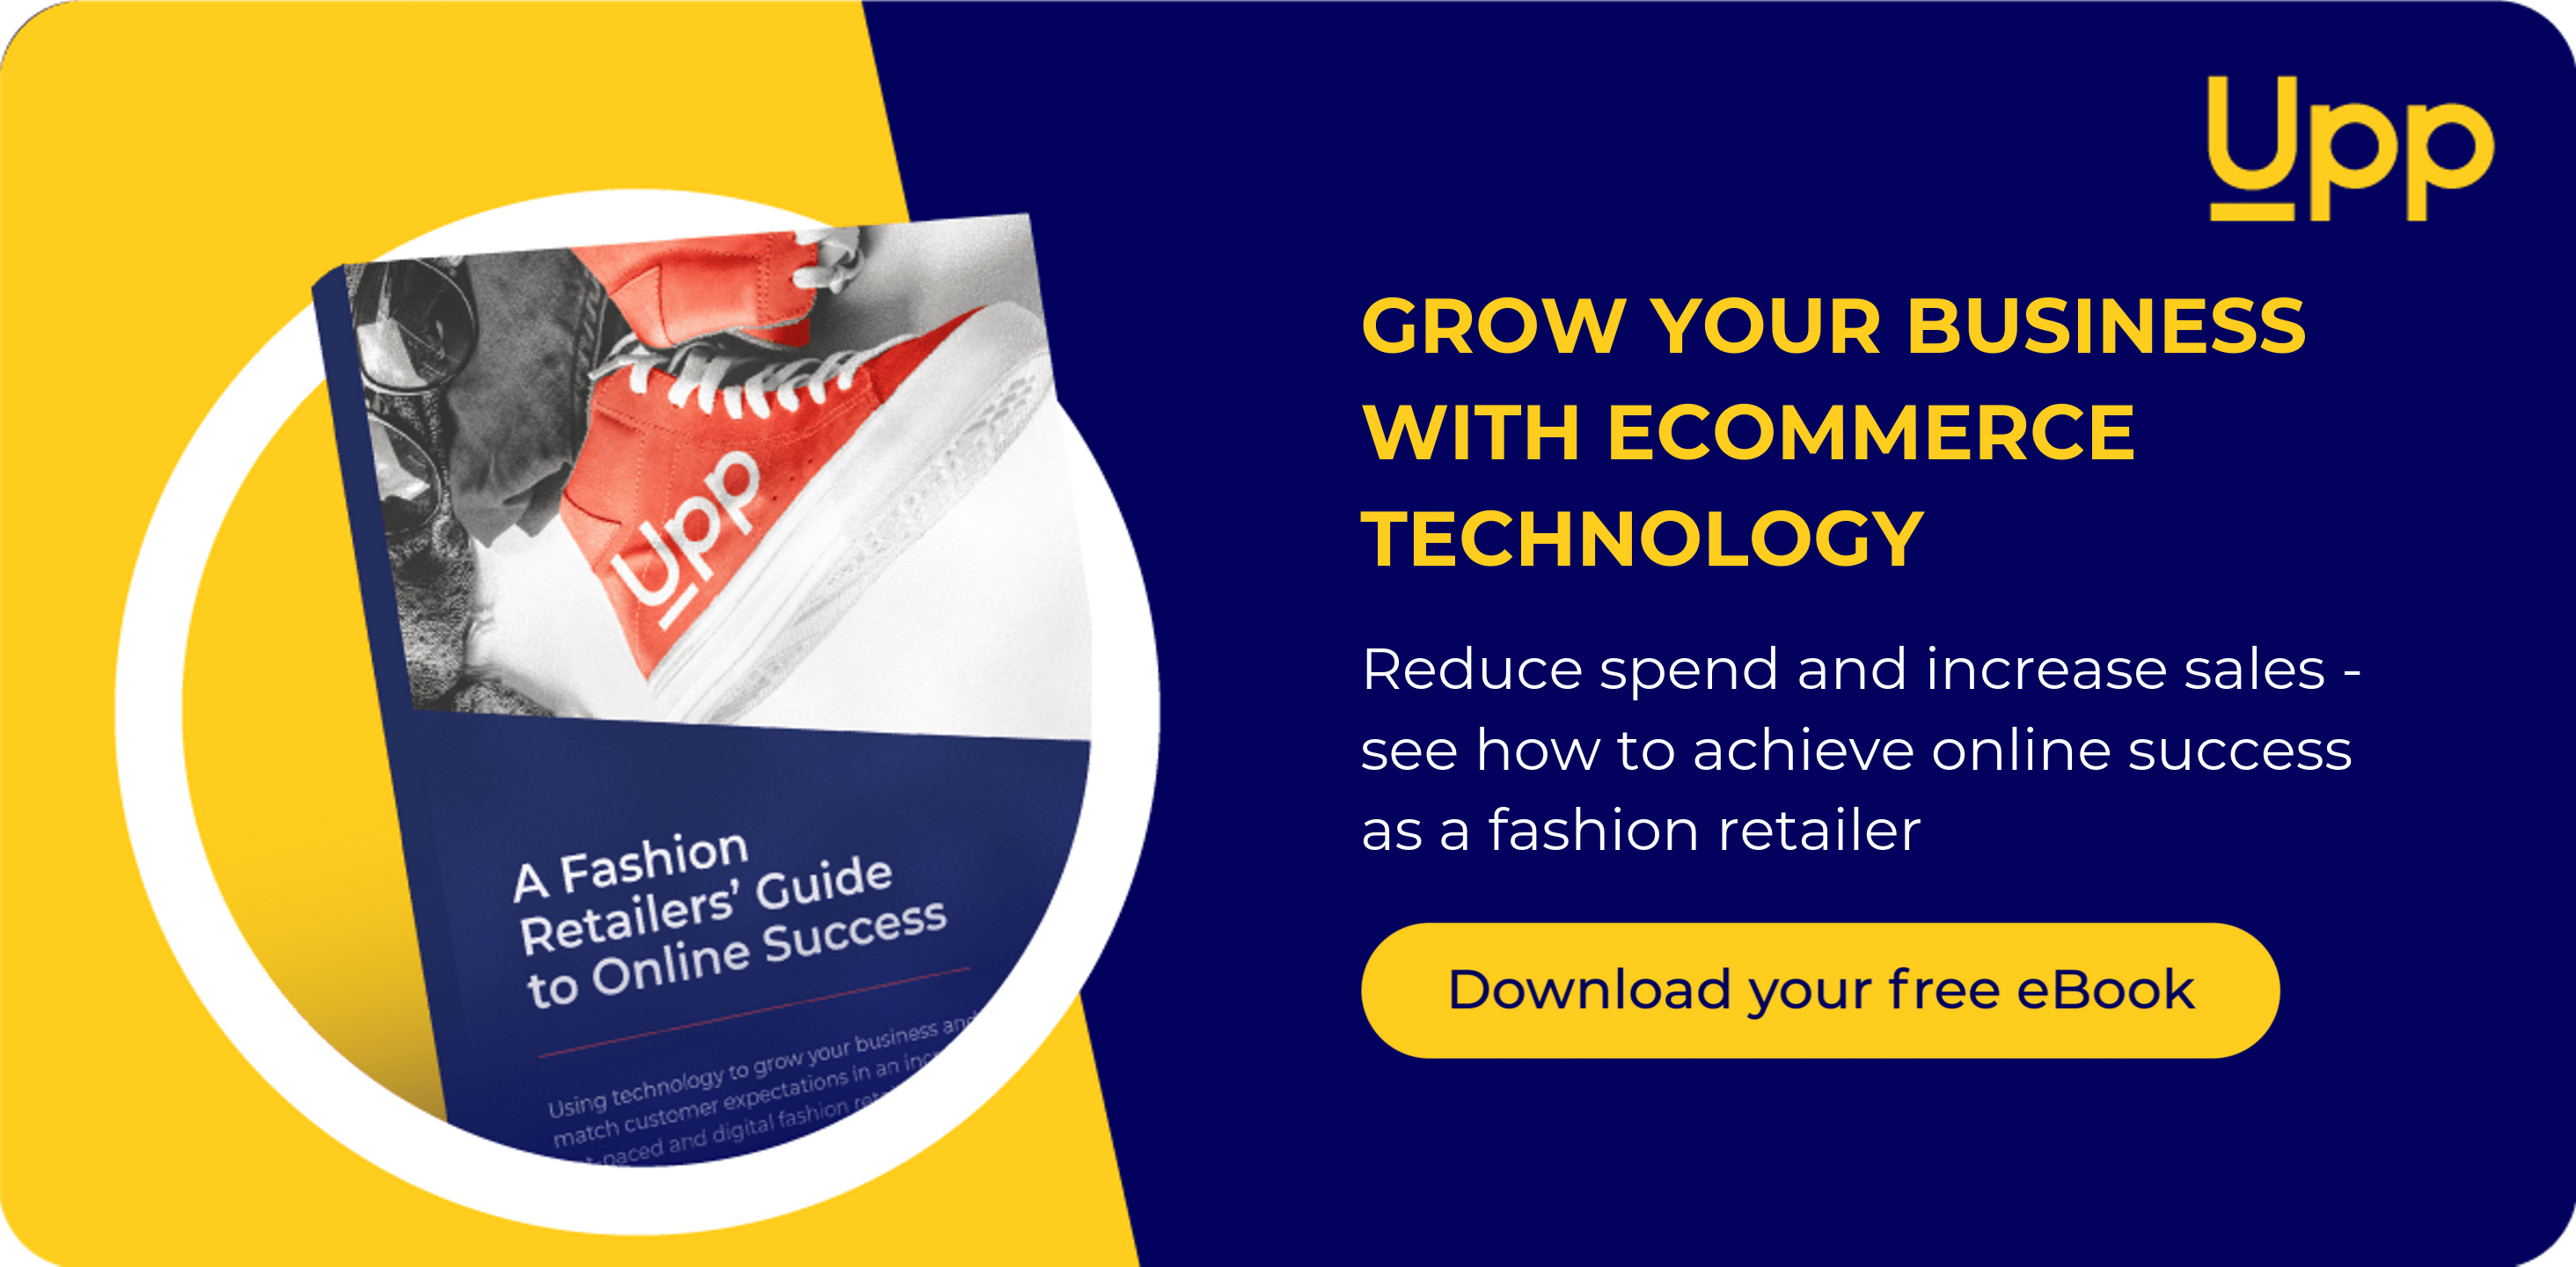 Fashion Retail Guide to Online Success